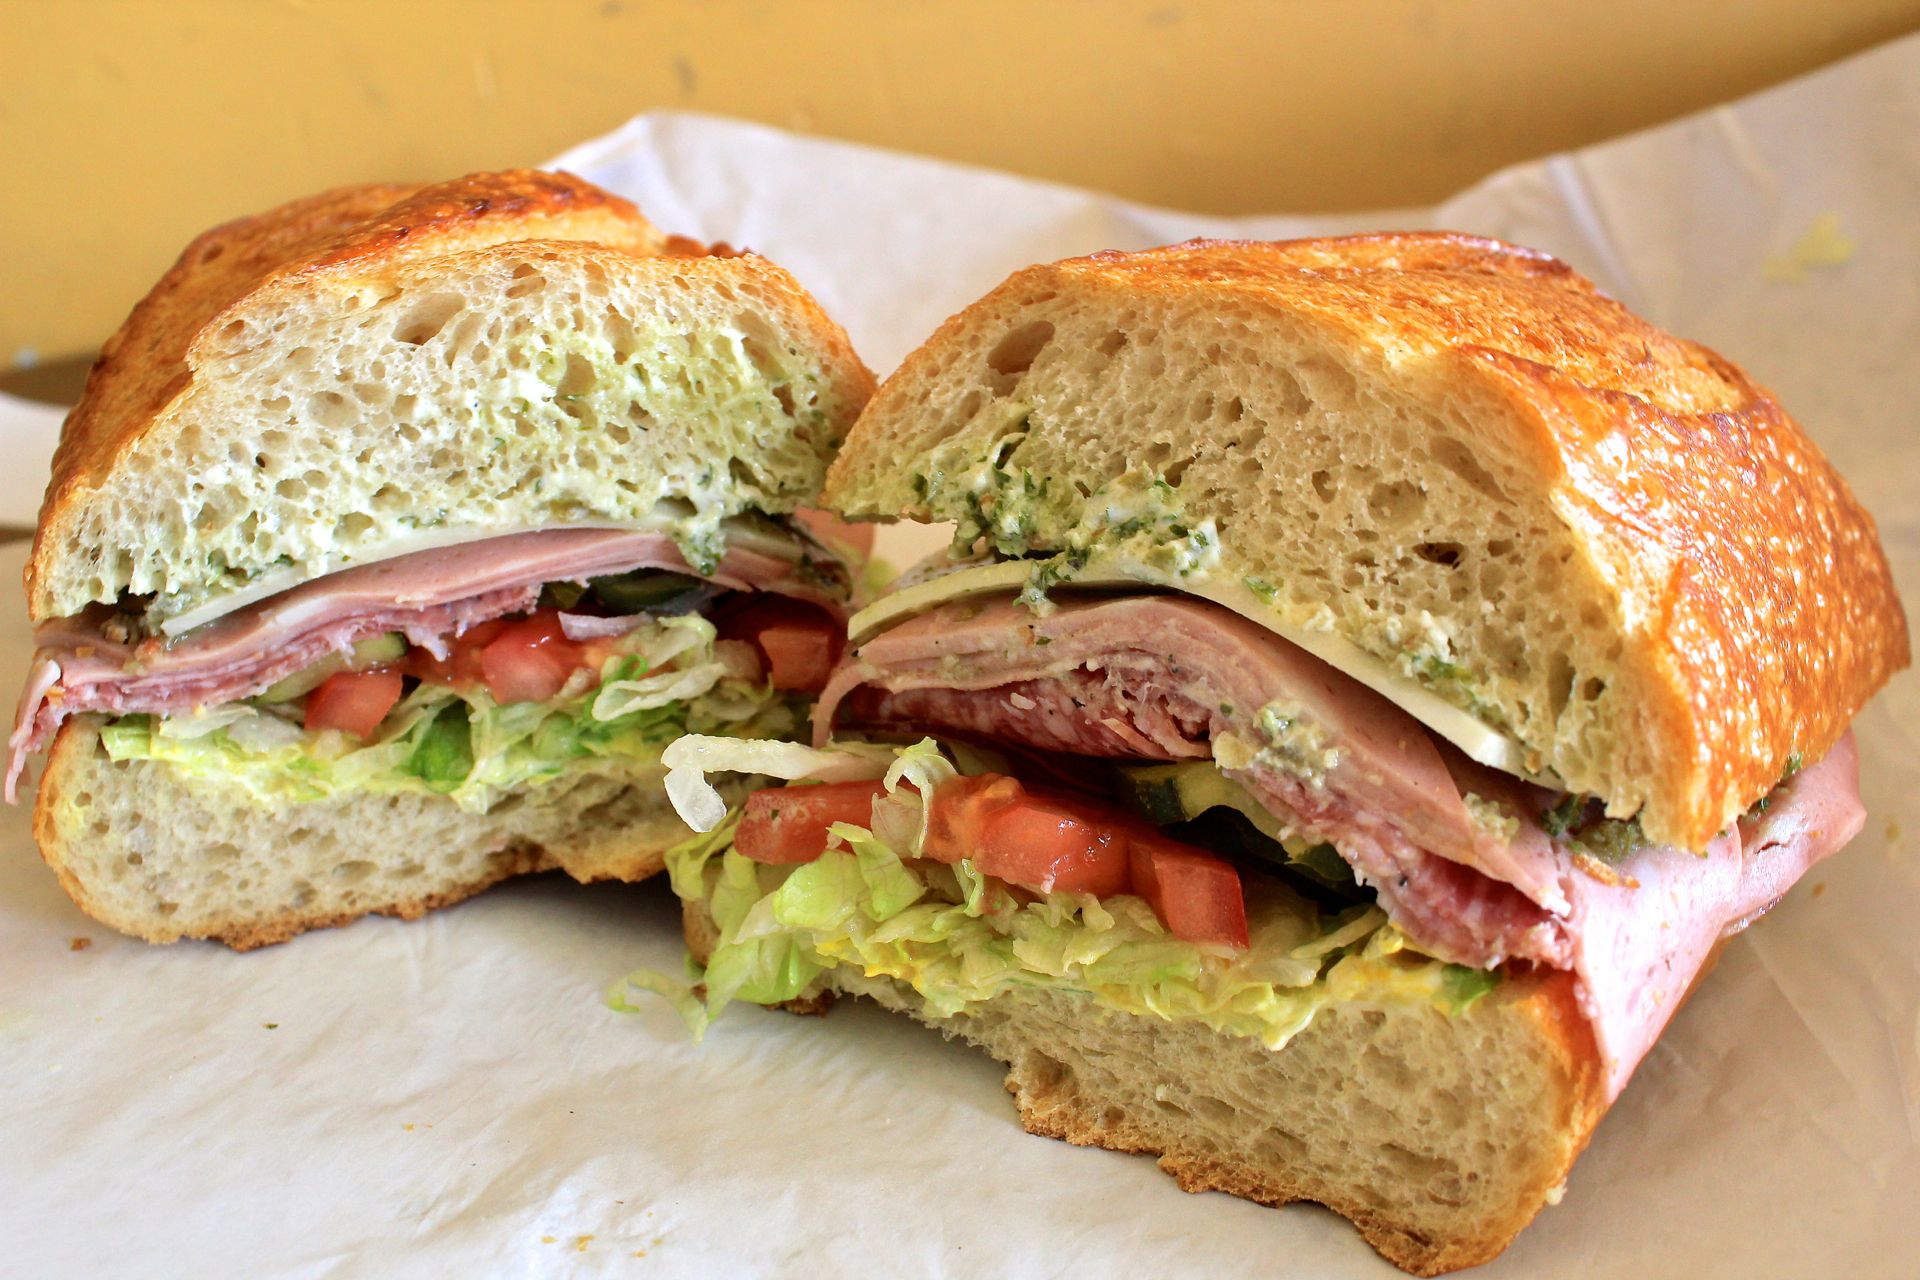 The Little Lucca combo sandwich with mortadella, provolone and salami.